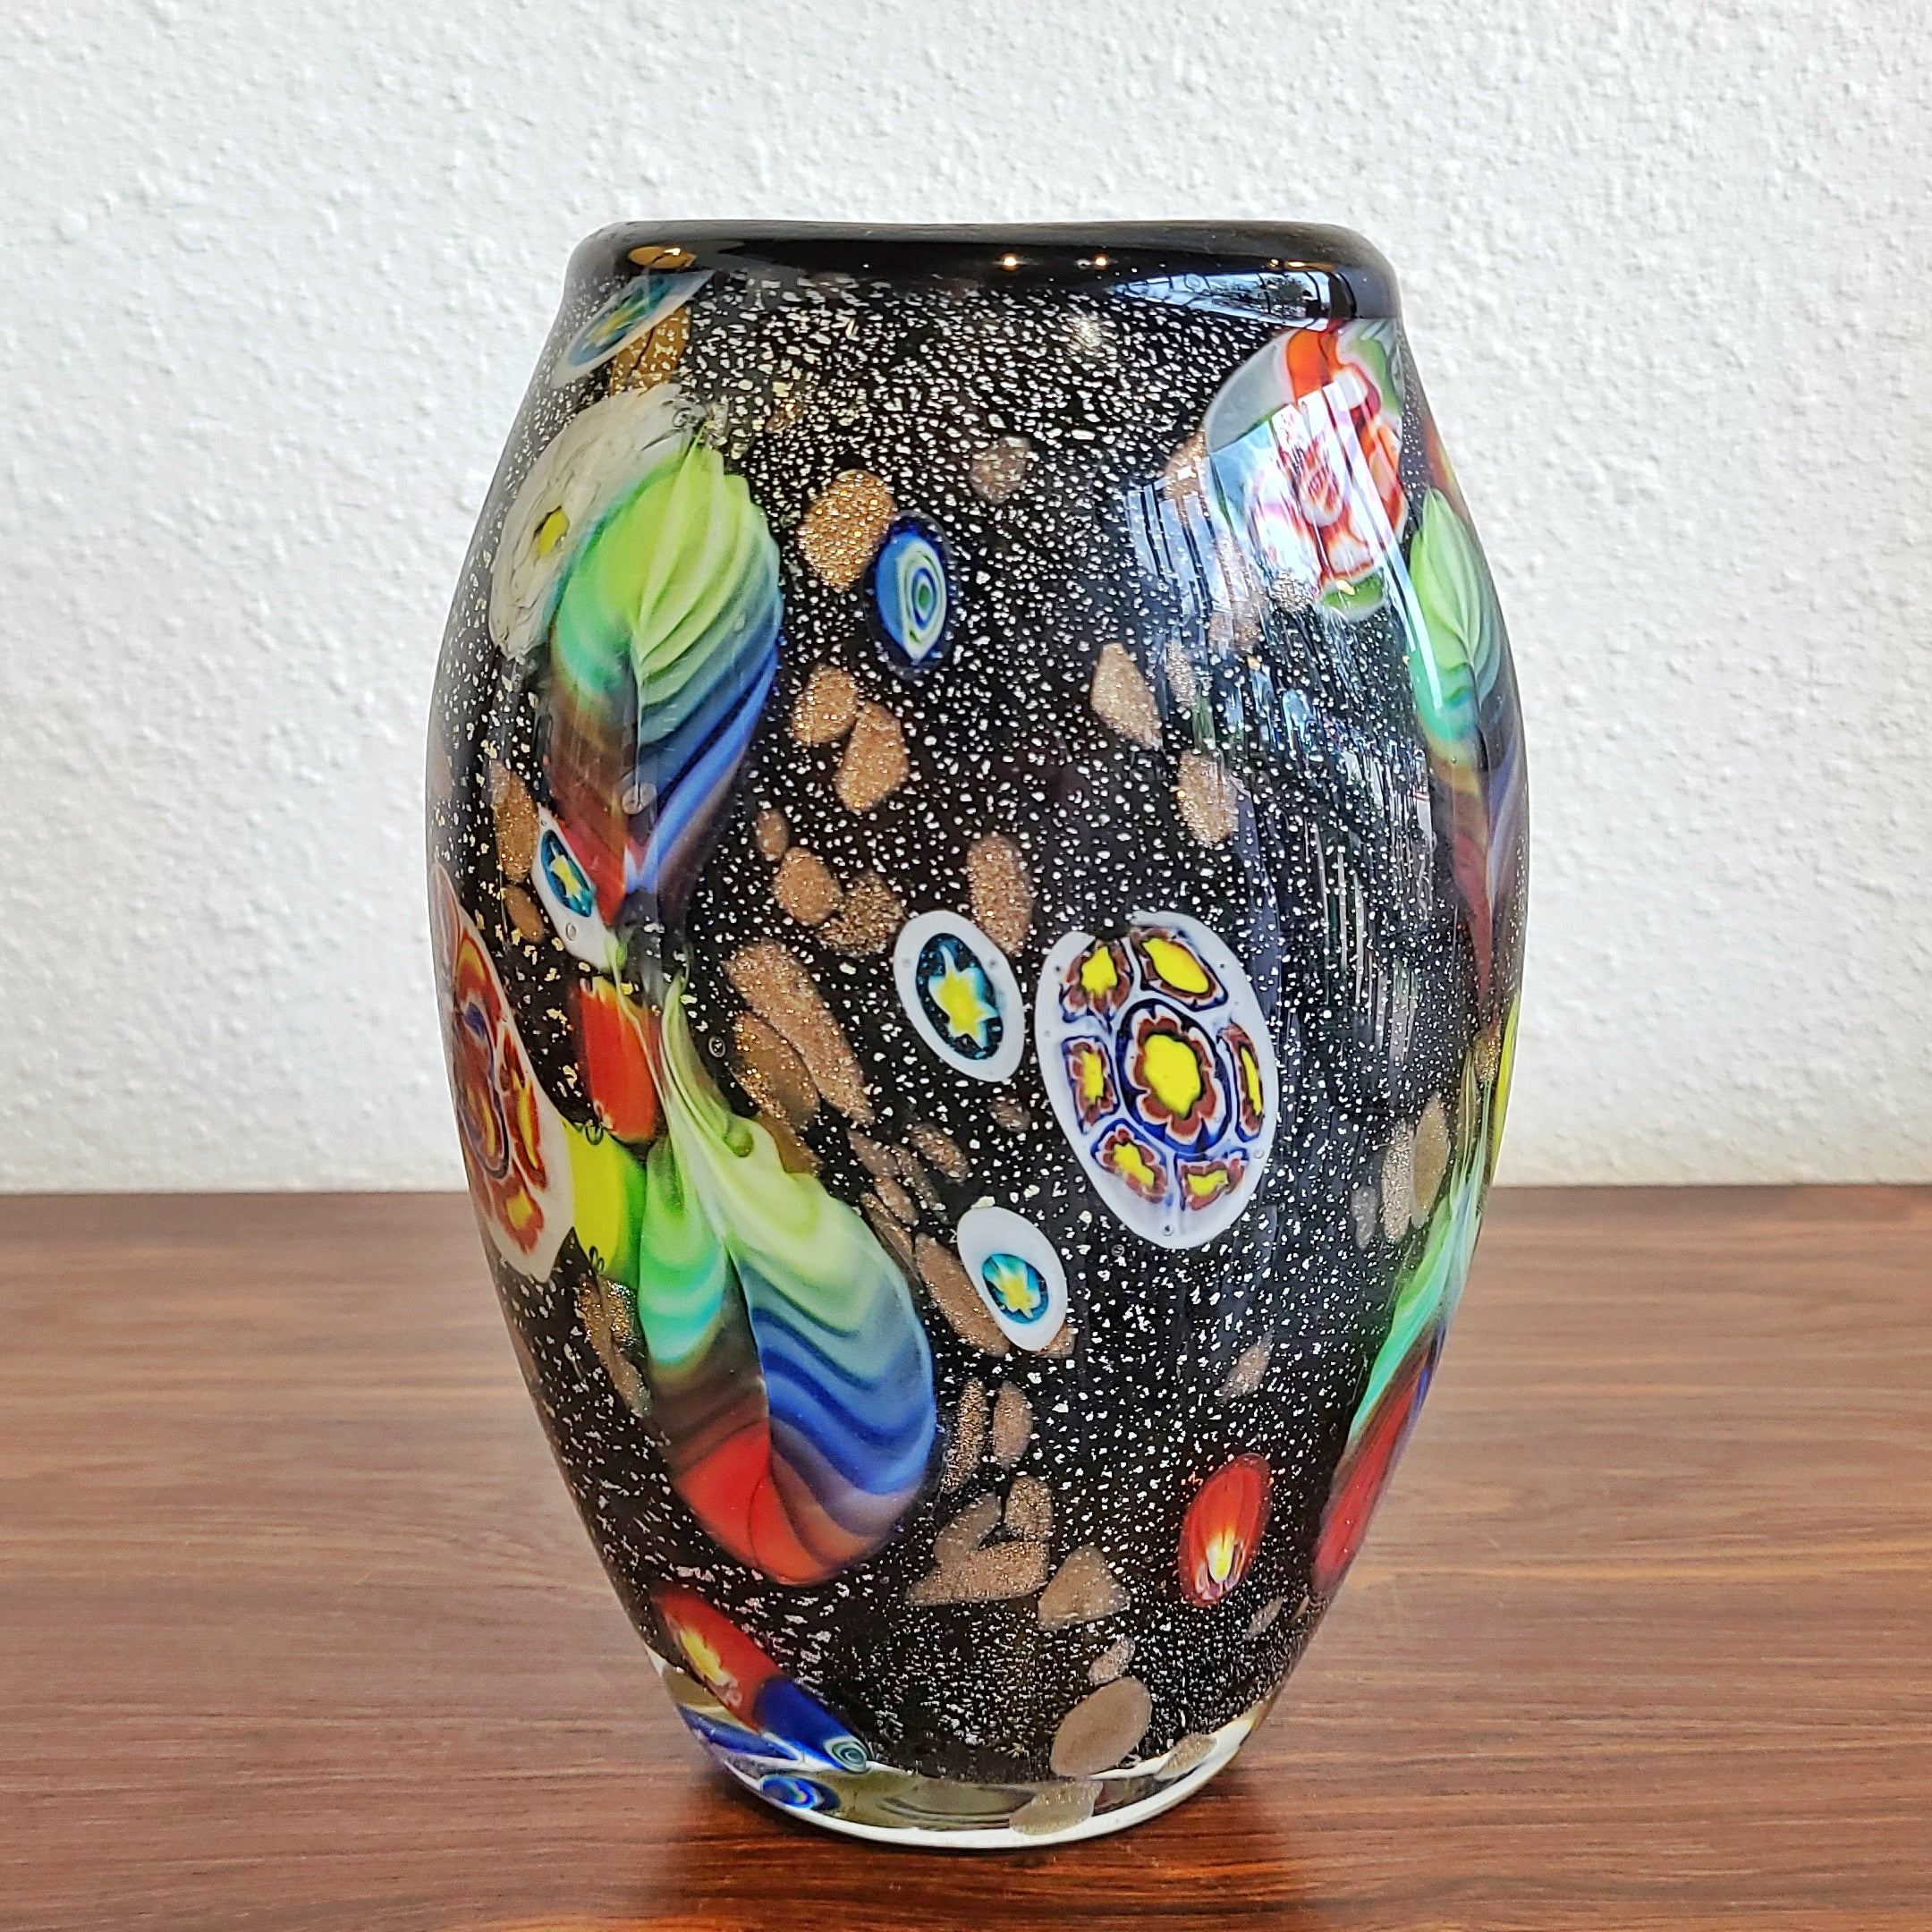 MURANO GLASS VASE WITH 'TUTTI FRUTTI' DECOR, 1950s ITALY